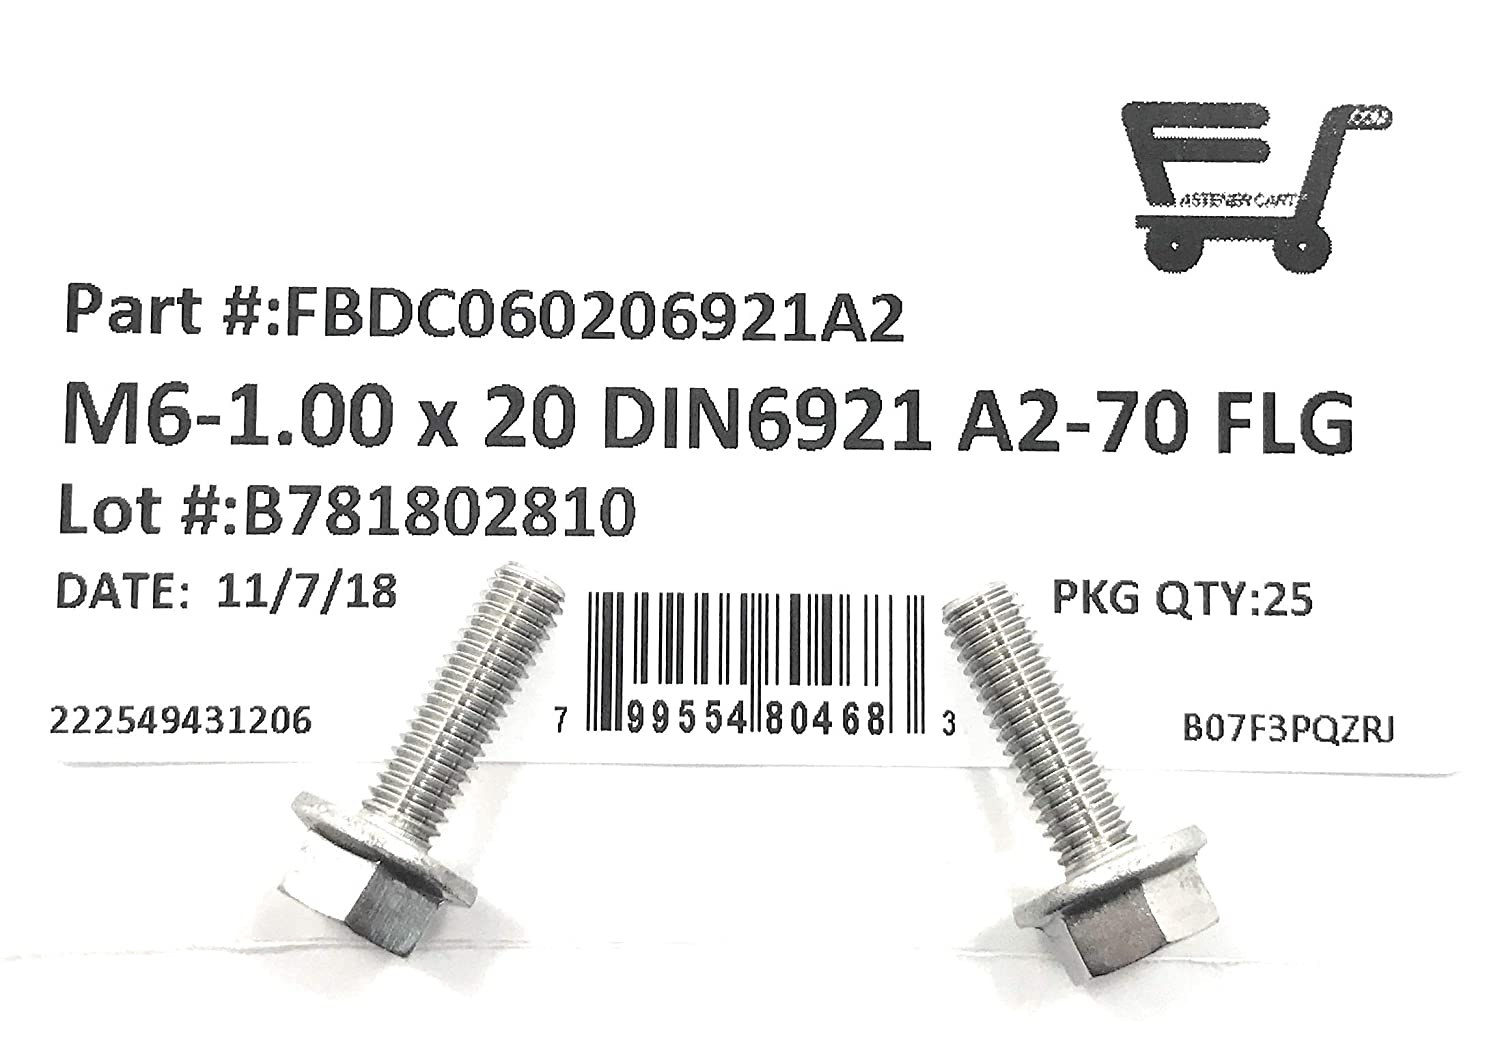 M6-1.00 x 20 Stainless Steel Flange Bolt DIN 6921 A2 Stainless Steel M6x20 25 Pieces